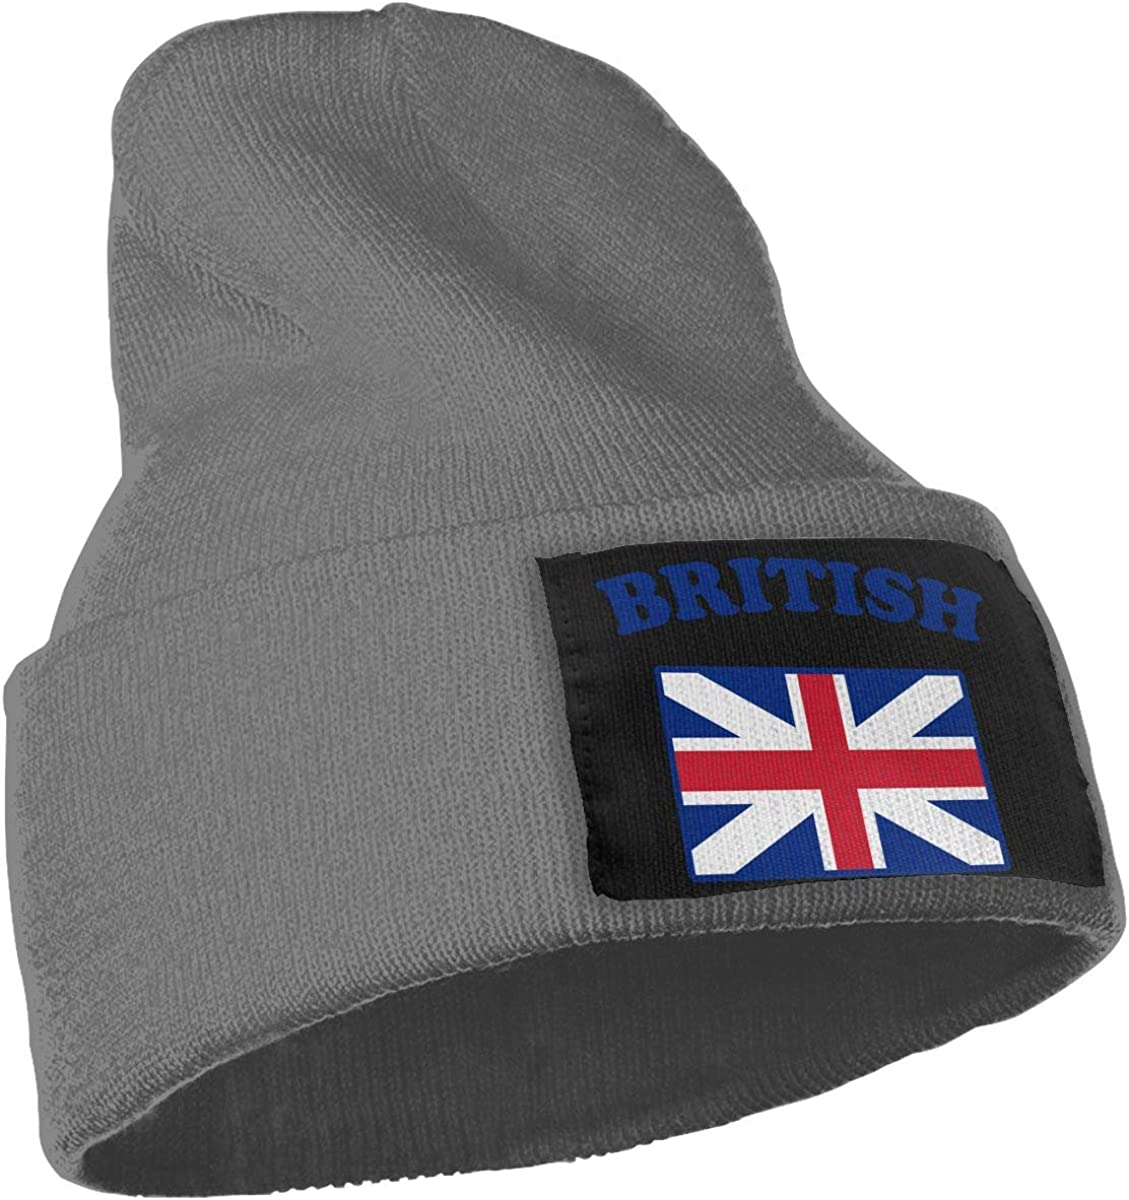 WHOO93@Y Mens and Womens 100/% Acrylic Knitting Hat Cap British Flag Fashion Skull Cap